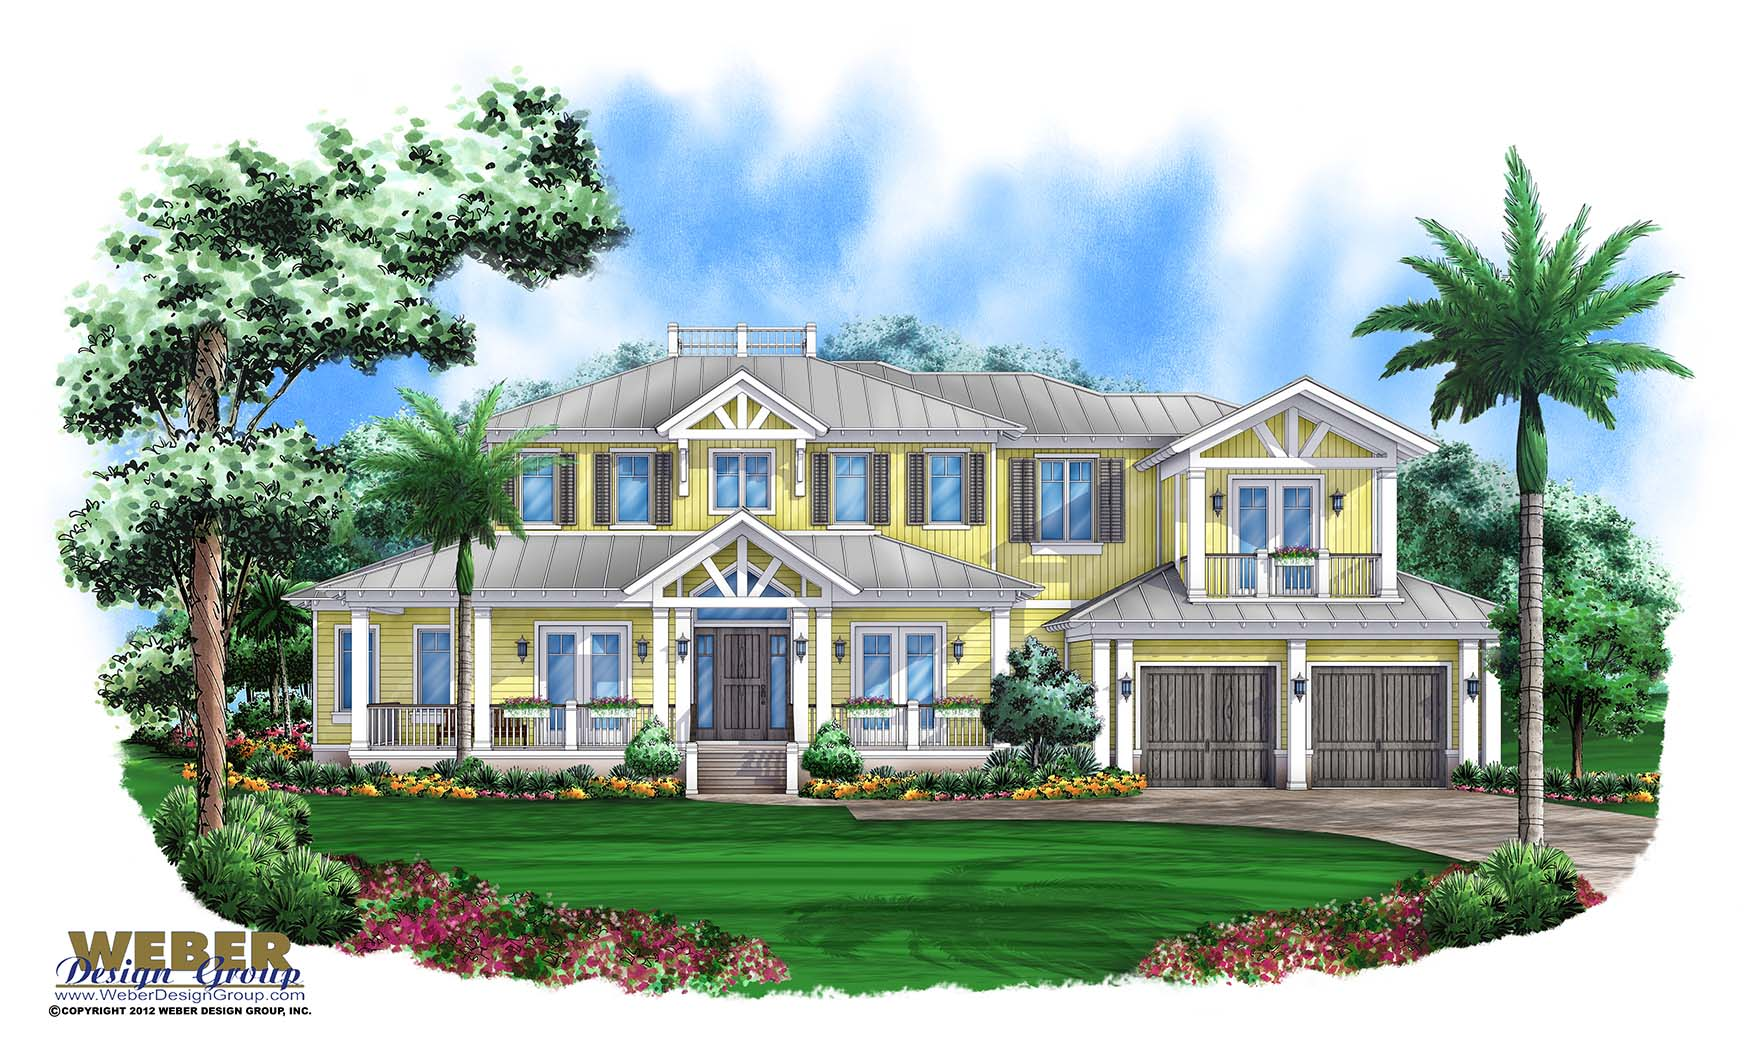 Key west house plans key west island style floor plans for Key west architecture style